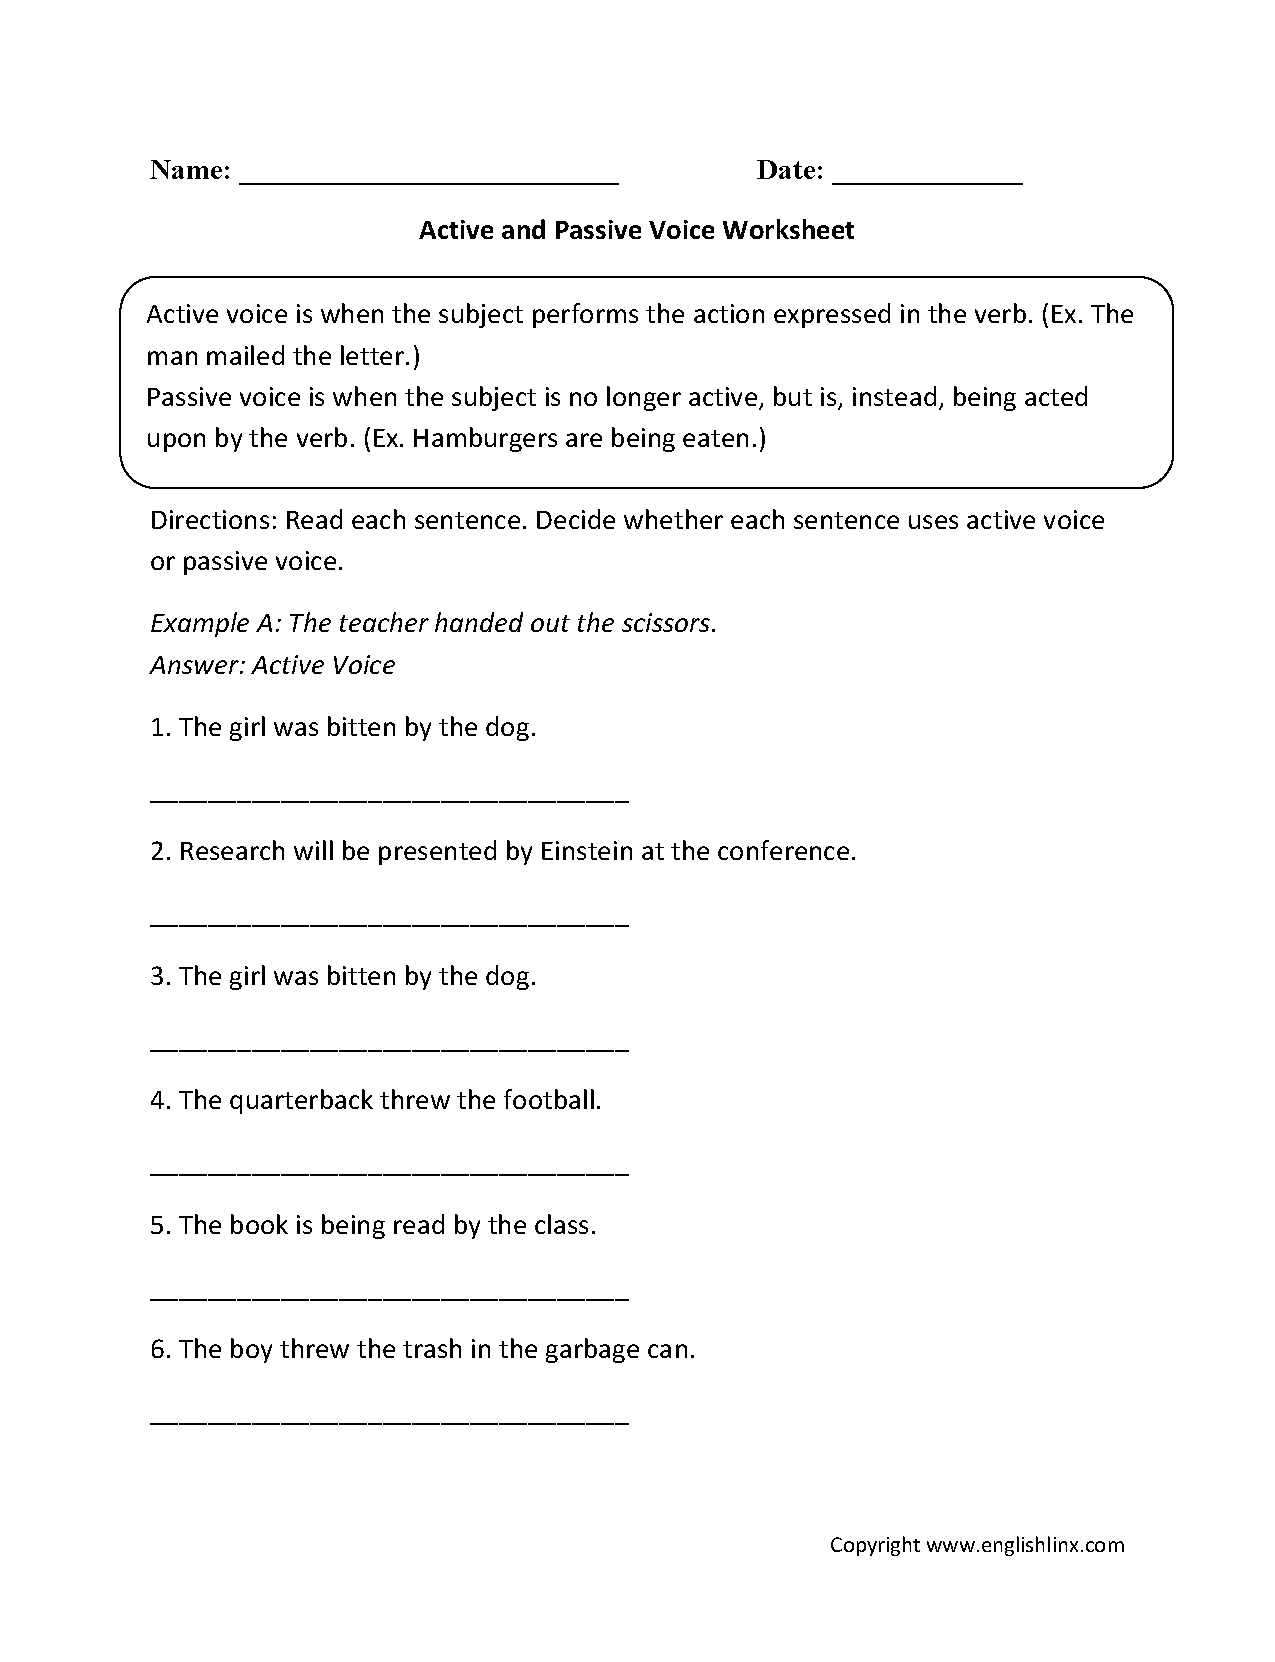 Worksheets Active And Passive Voice Worksheets With Answers englishlinx com active and passive voice worksheets worksheet